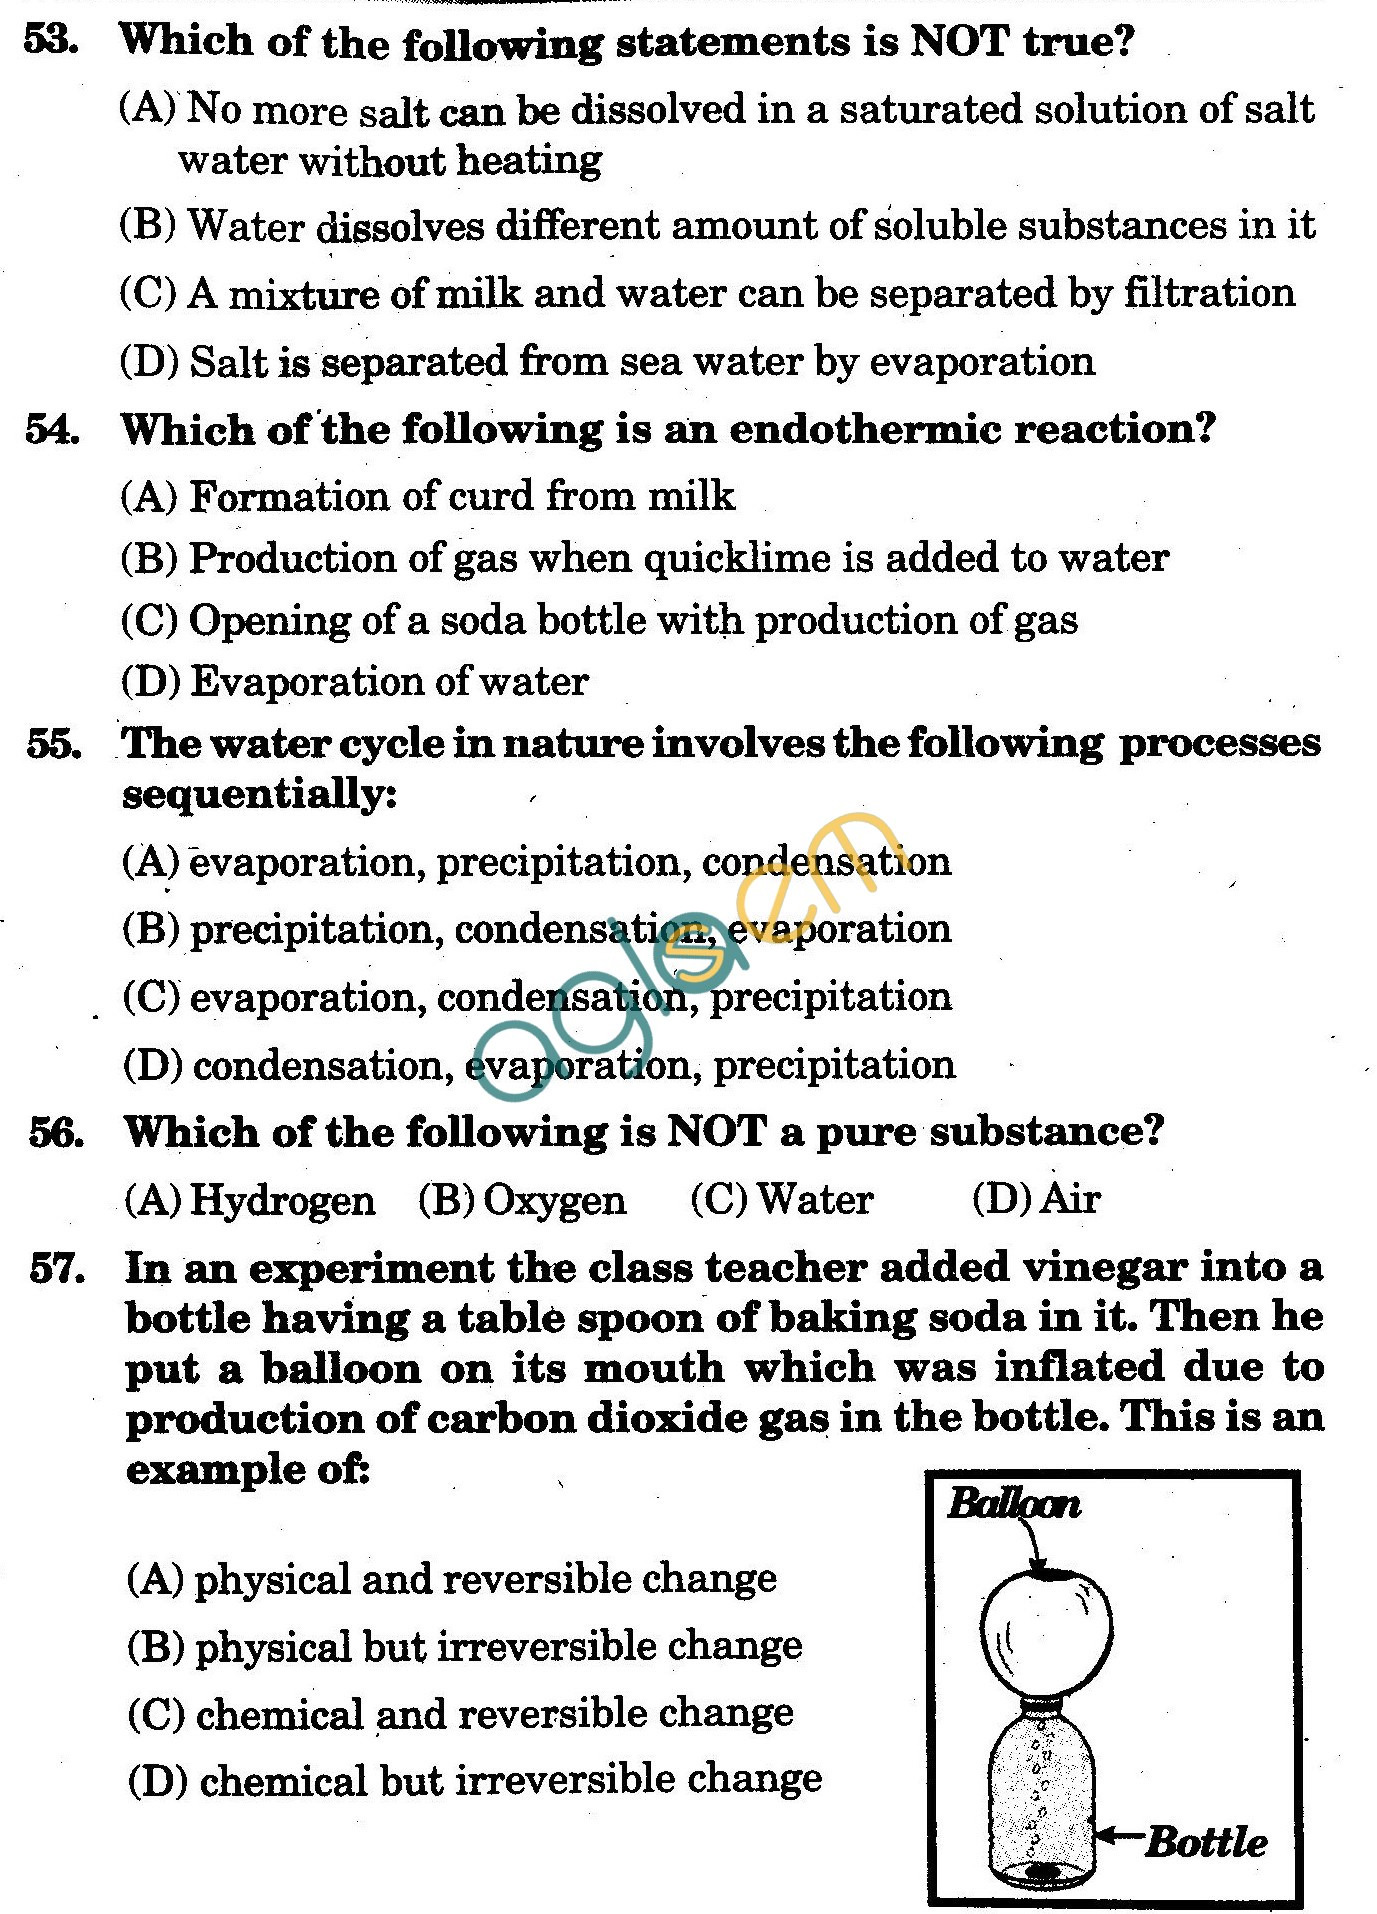 NSTSE 2009 Class VI Question Paper with Answers - Chemistry